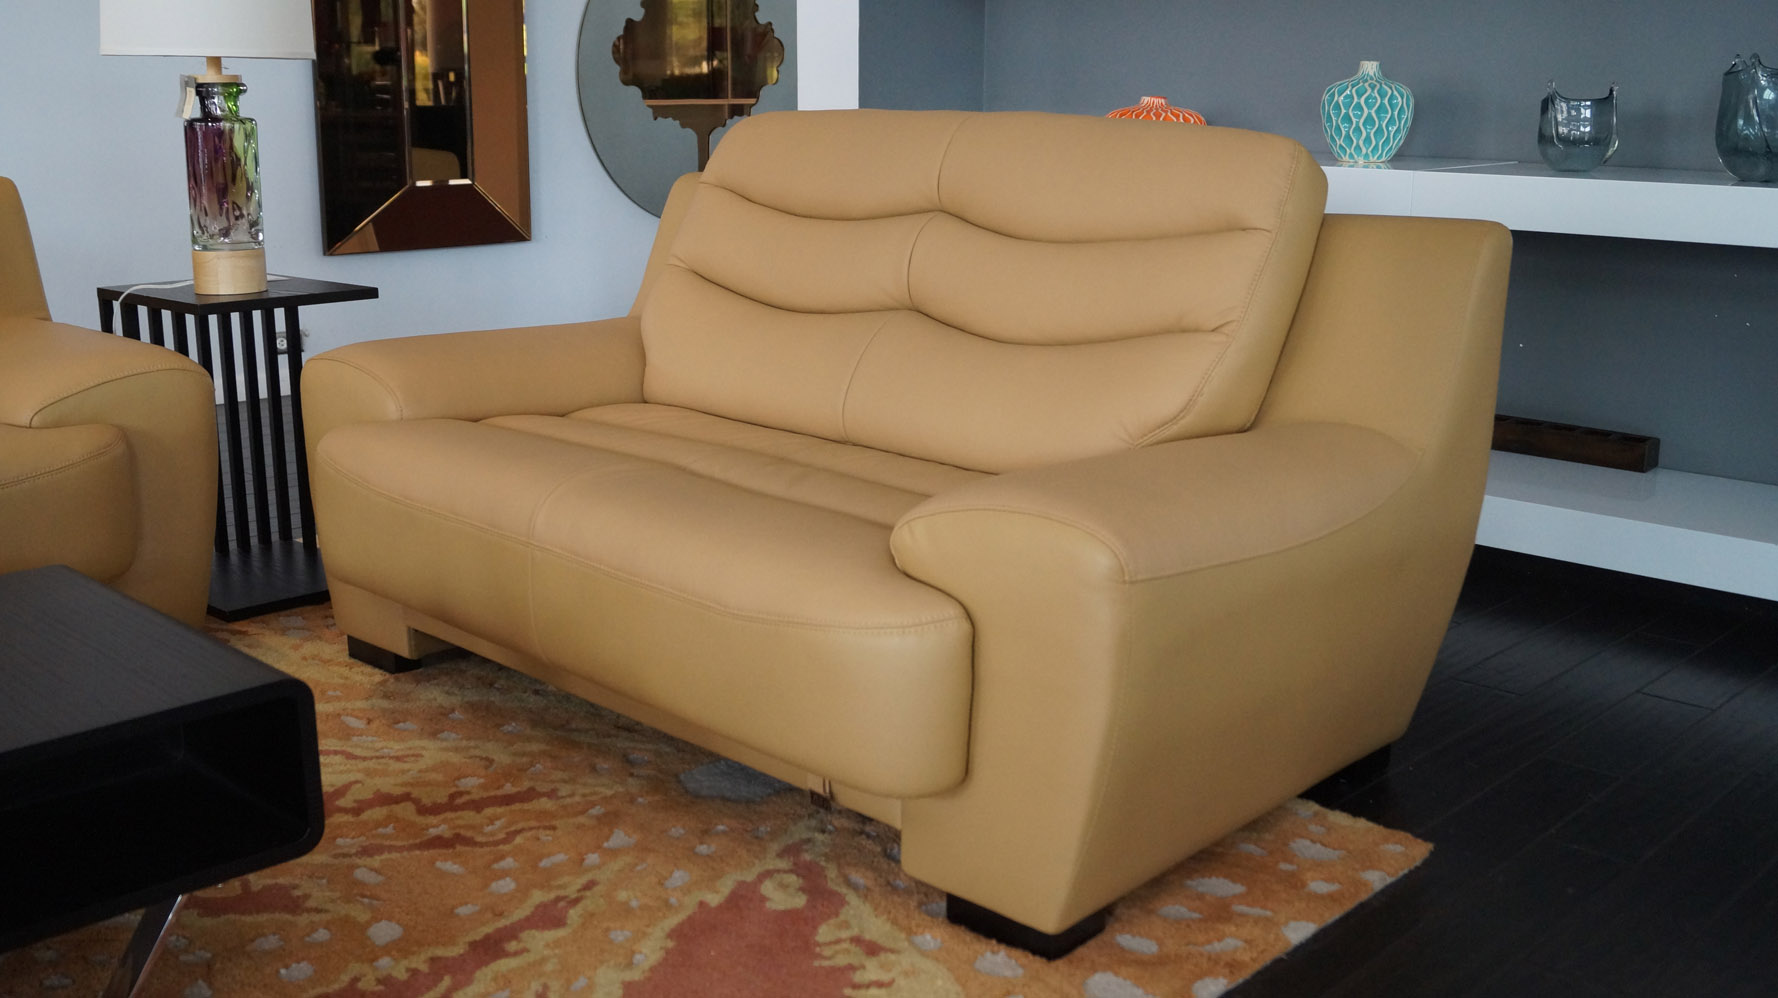 Sofa Set Laguna Philippines Laguna 3 Piece Mustard Yellow Leather Sofa Set Zuri